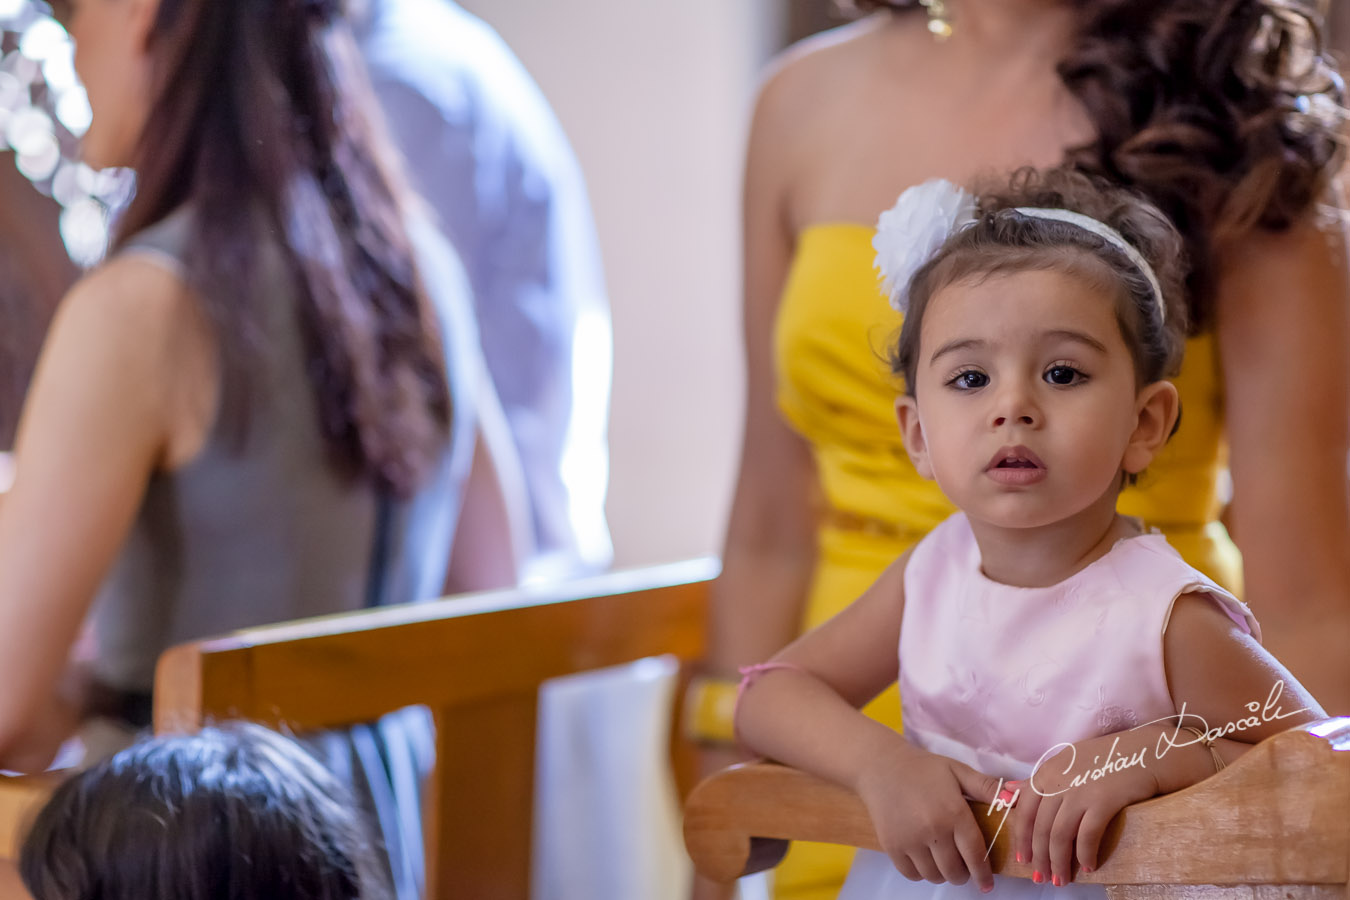 Christening Photography - A Touching Christening Tale. Photographer: Cristian Dascalu